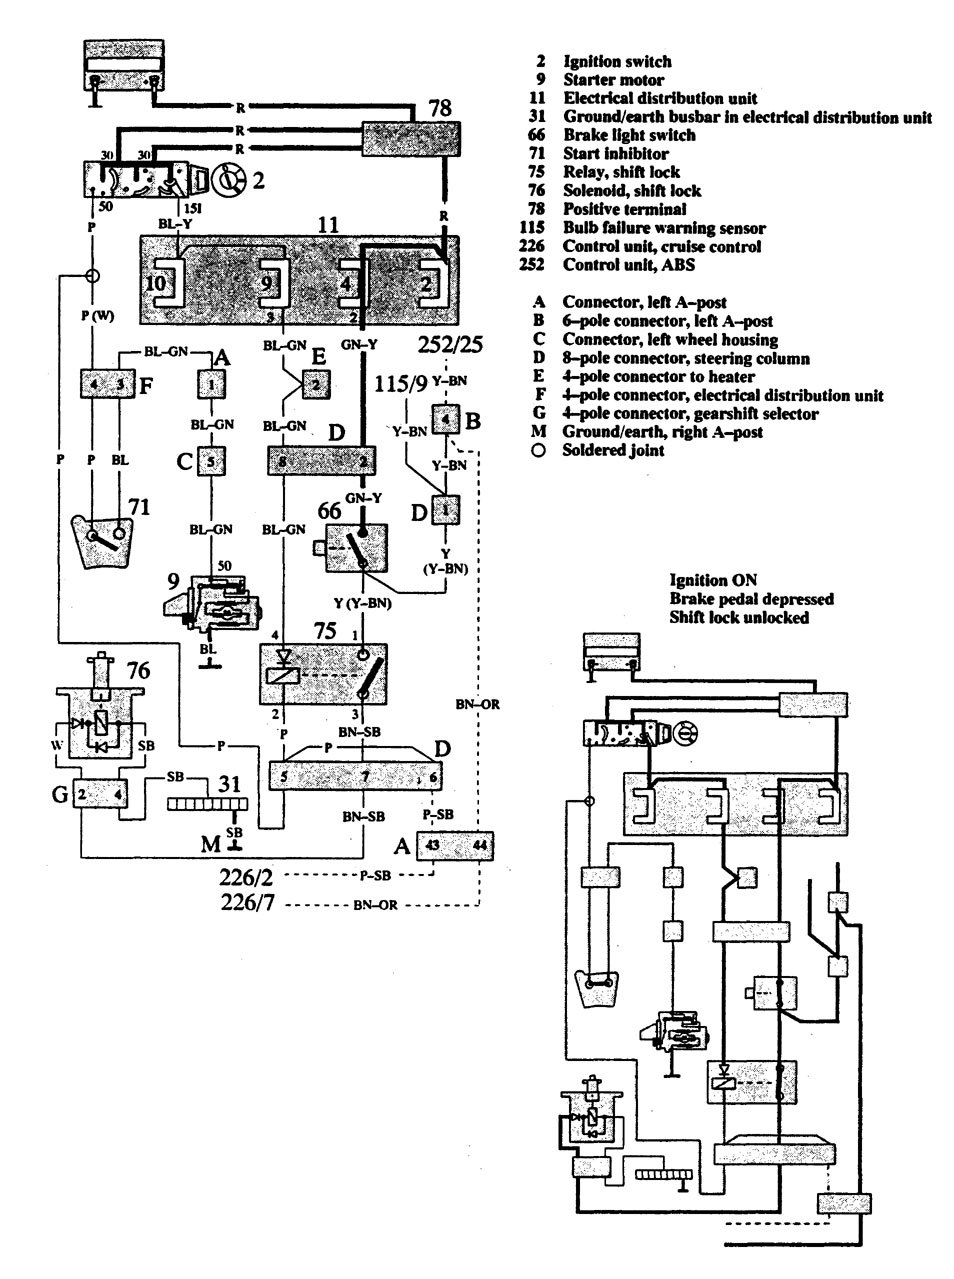 ... 1991 940 Volvo Engine Diagram Infiniti M45 Engine Diagram ...